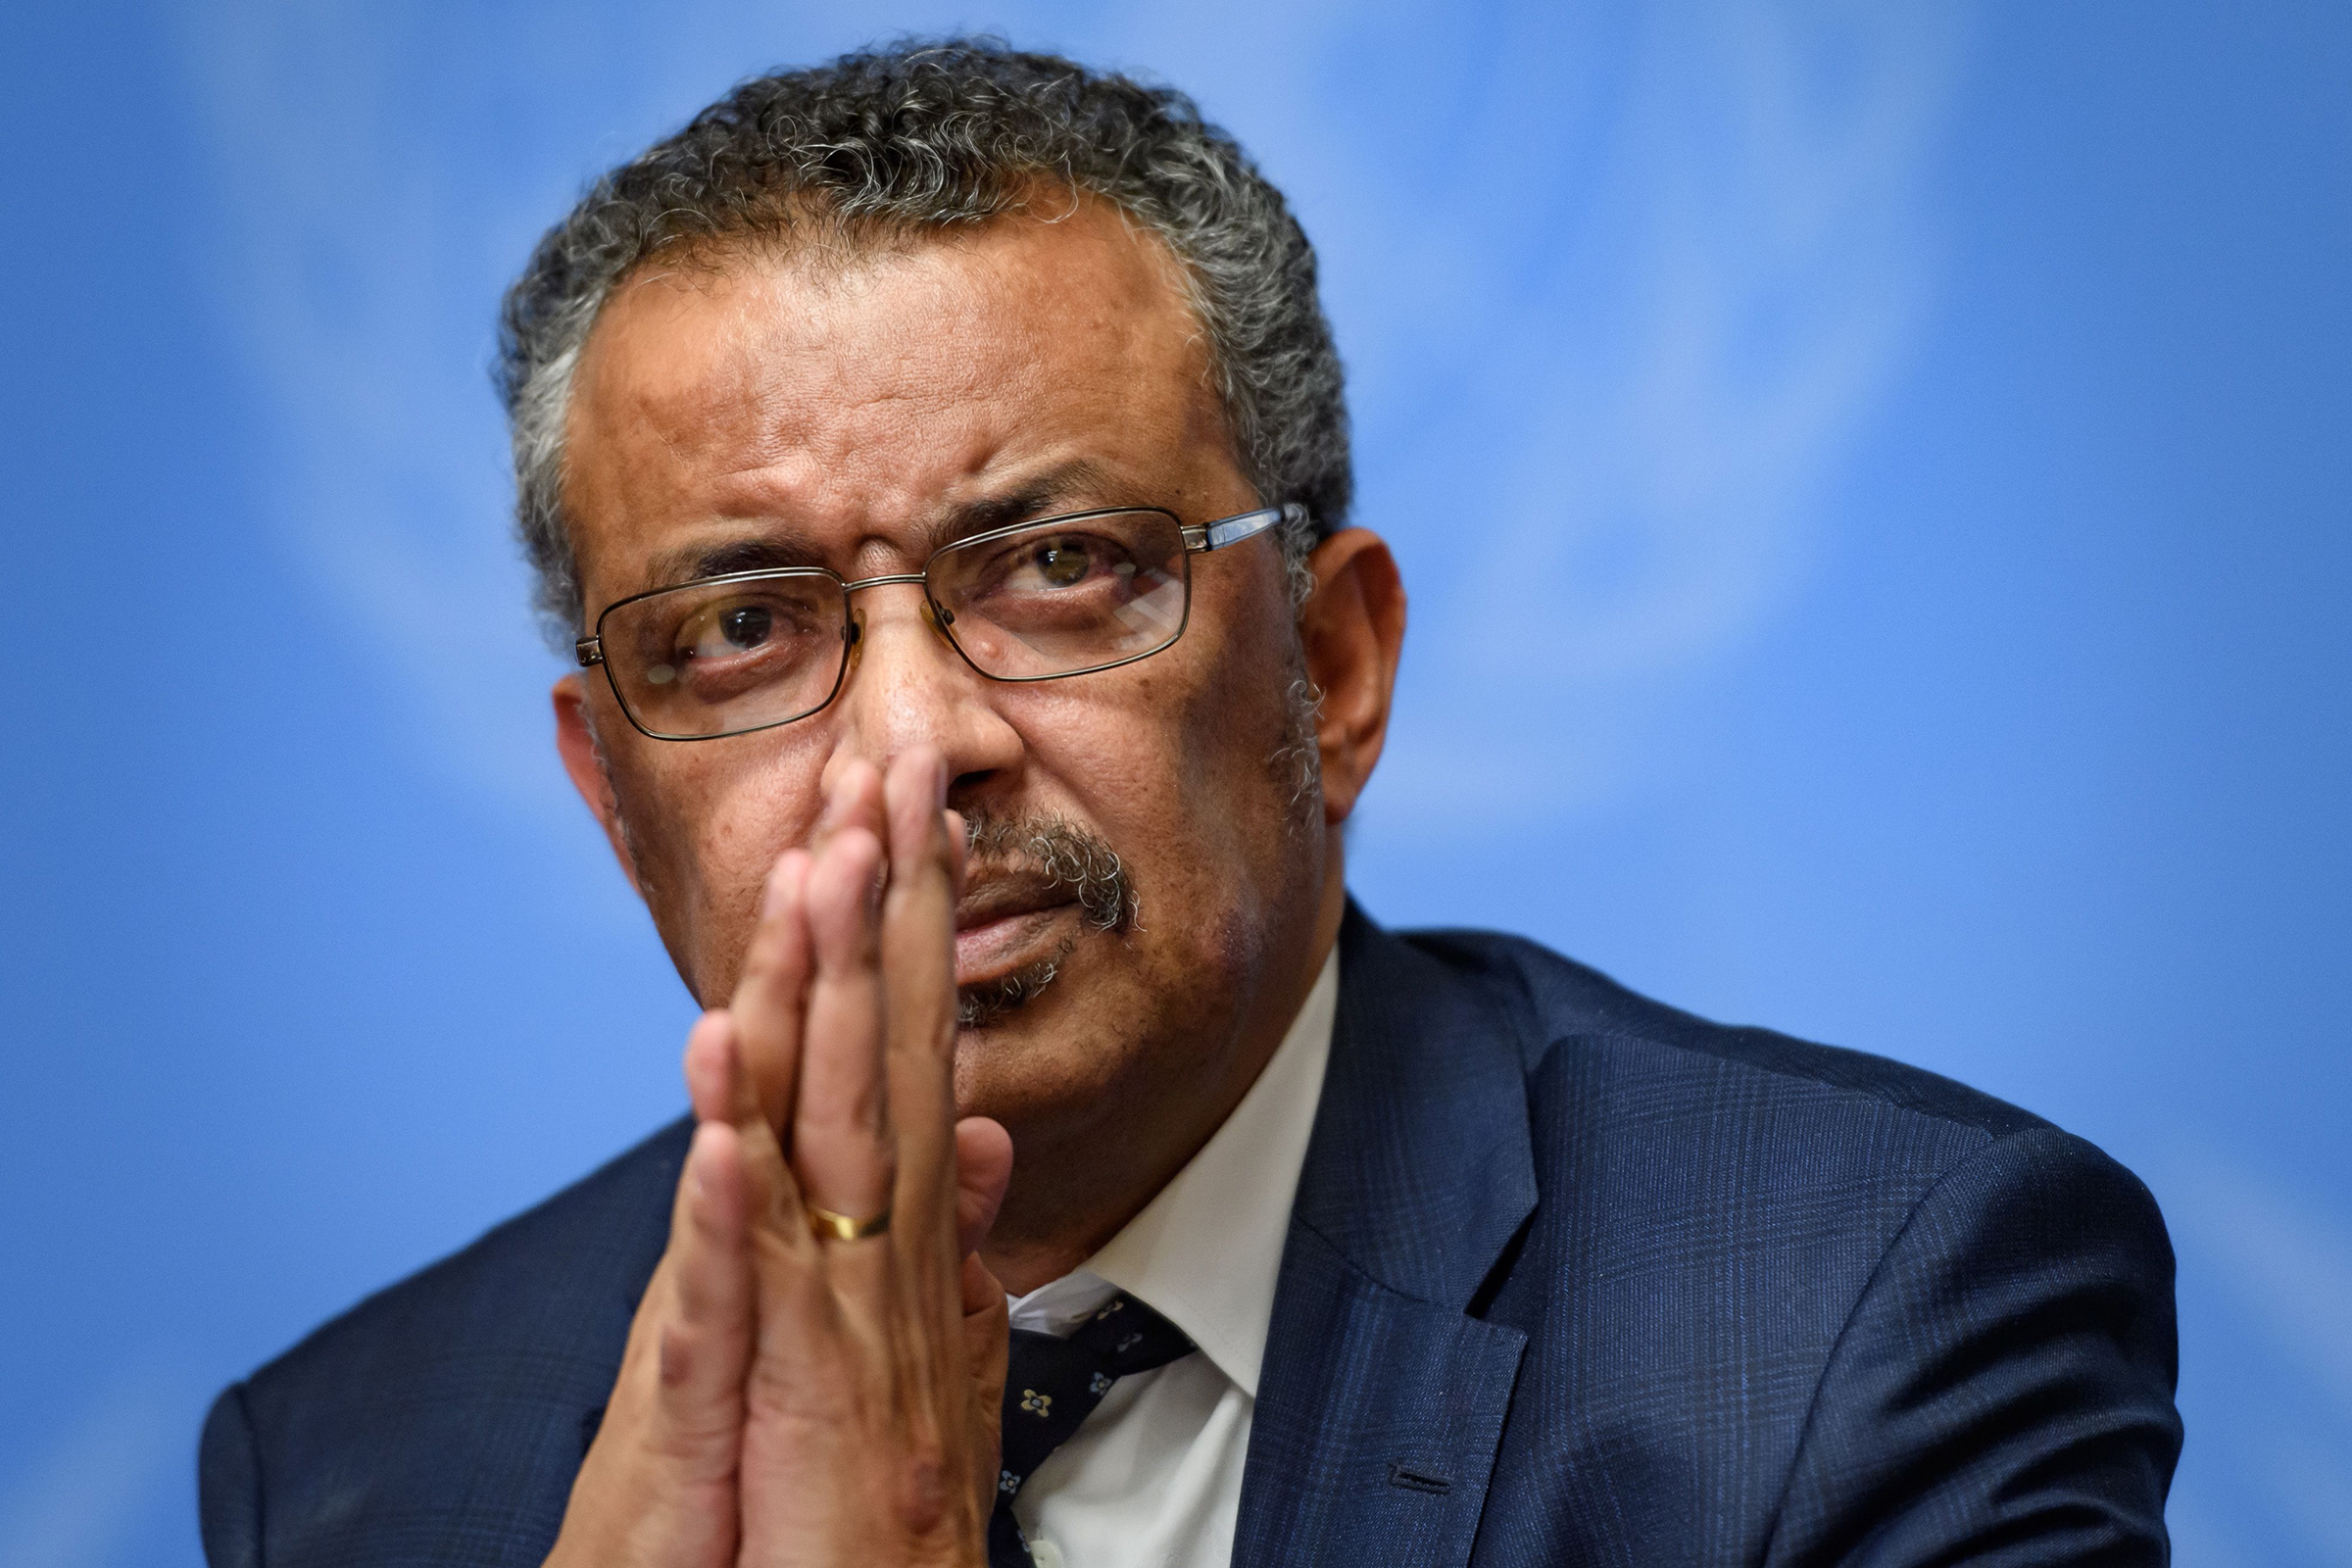 World Health Organization (WHO) Director-General Tedros Adhanom Ghebreyesus gestures during a press briefing on evolution of new coronavirus epidemic on Jan. 29 in Geneva